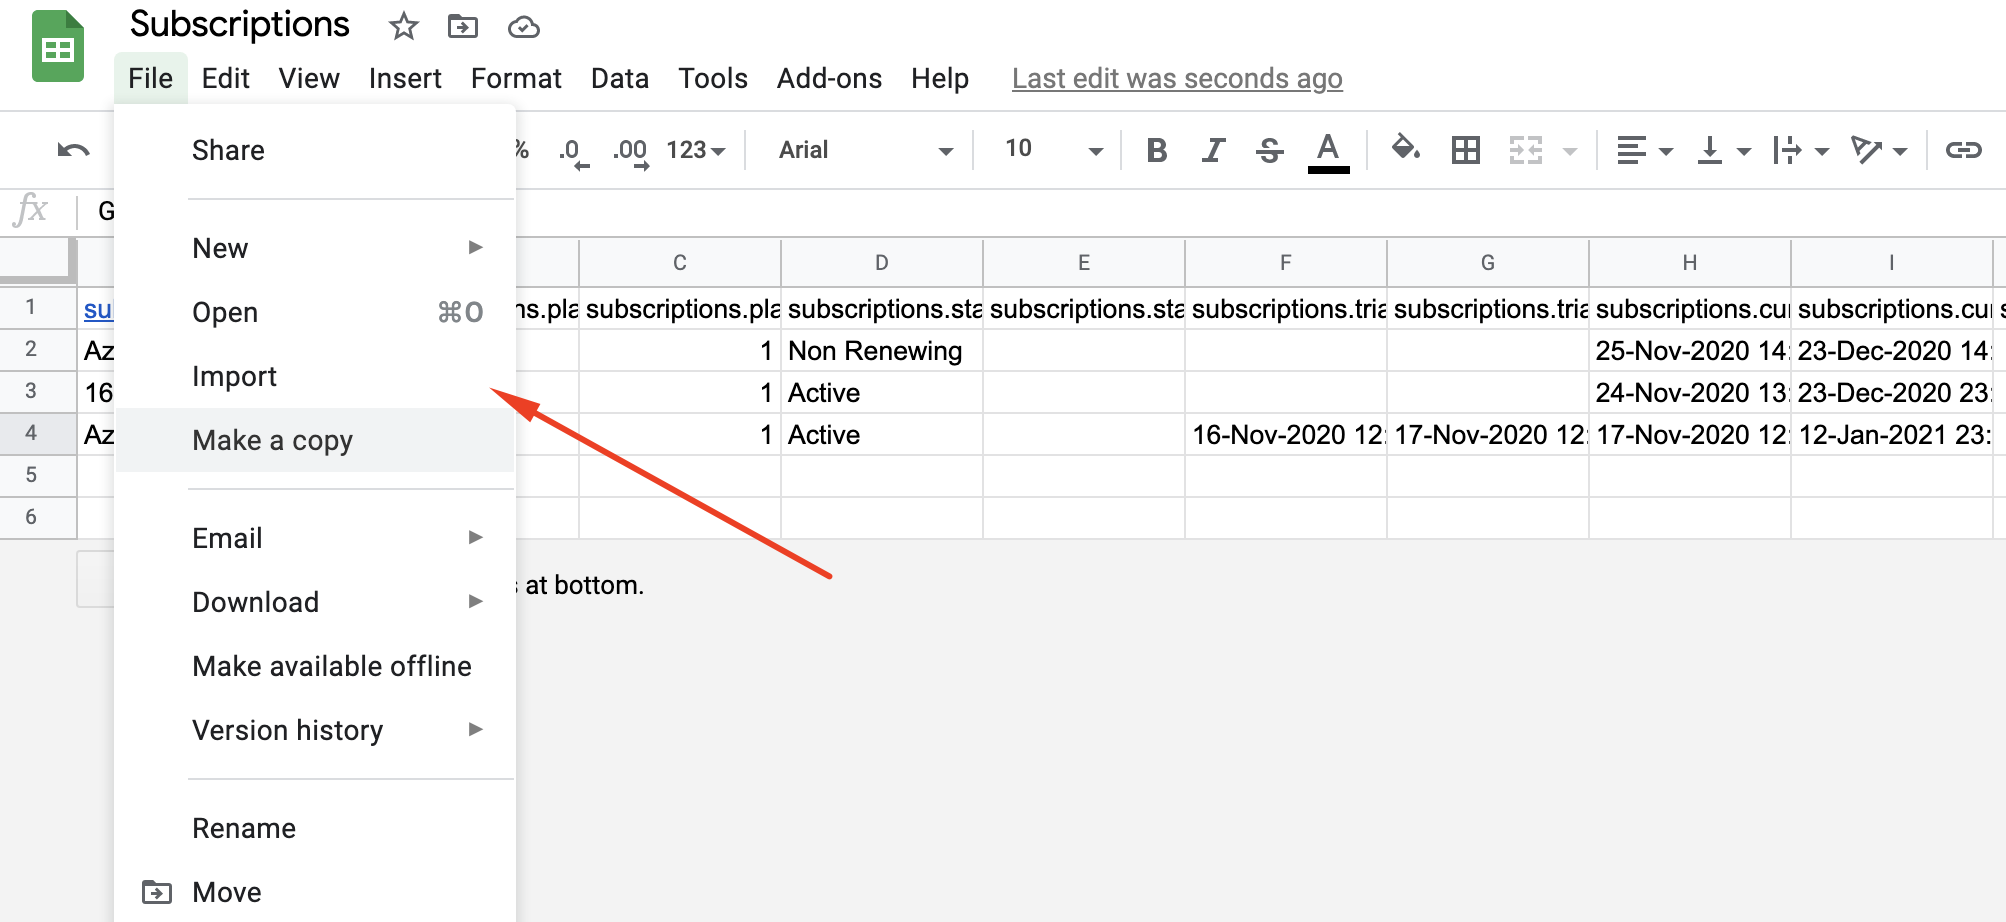 screenshot 4 - Migrating Active Subscriptions from Chargebee to Stripe